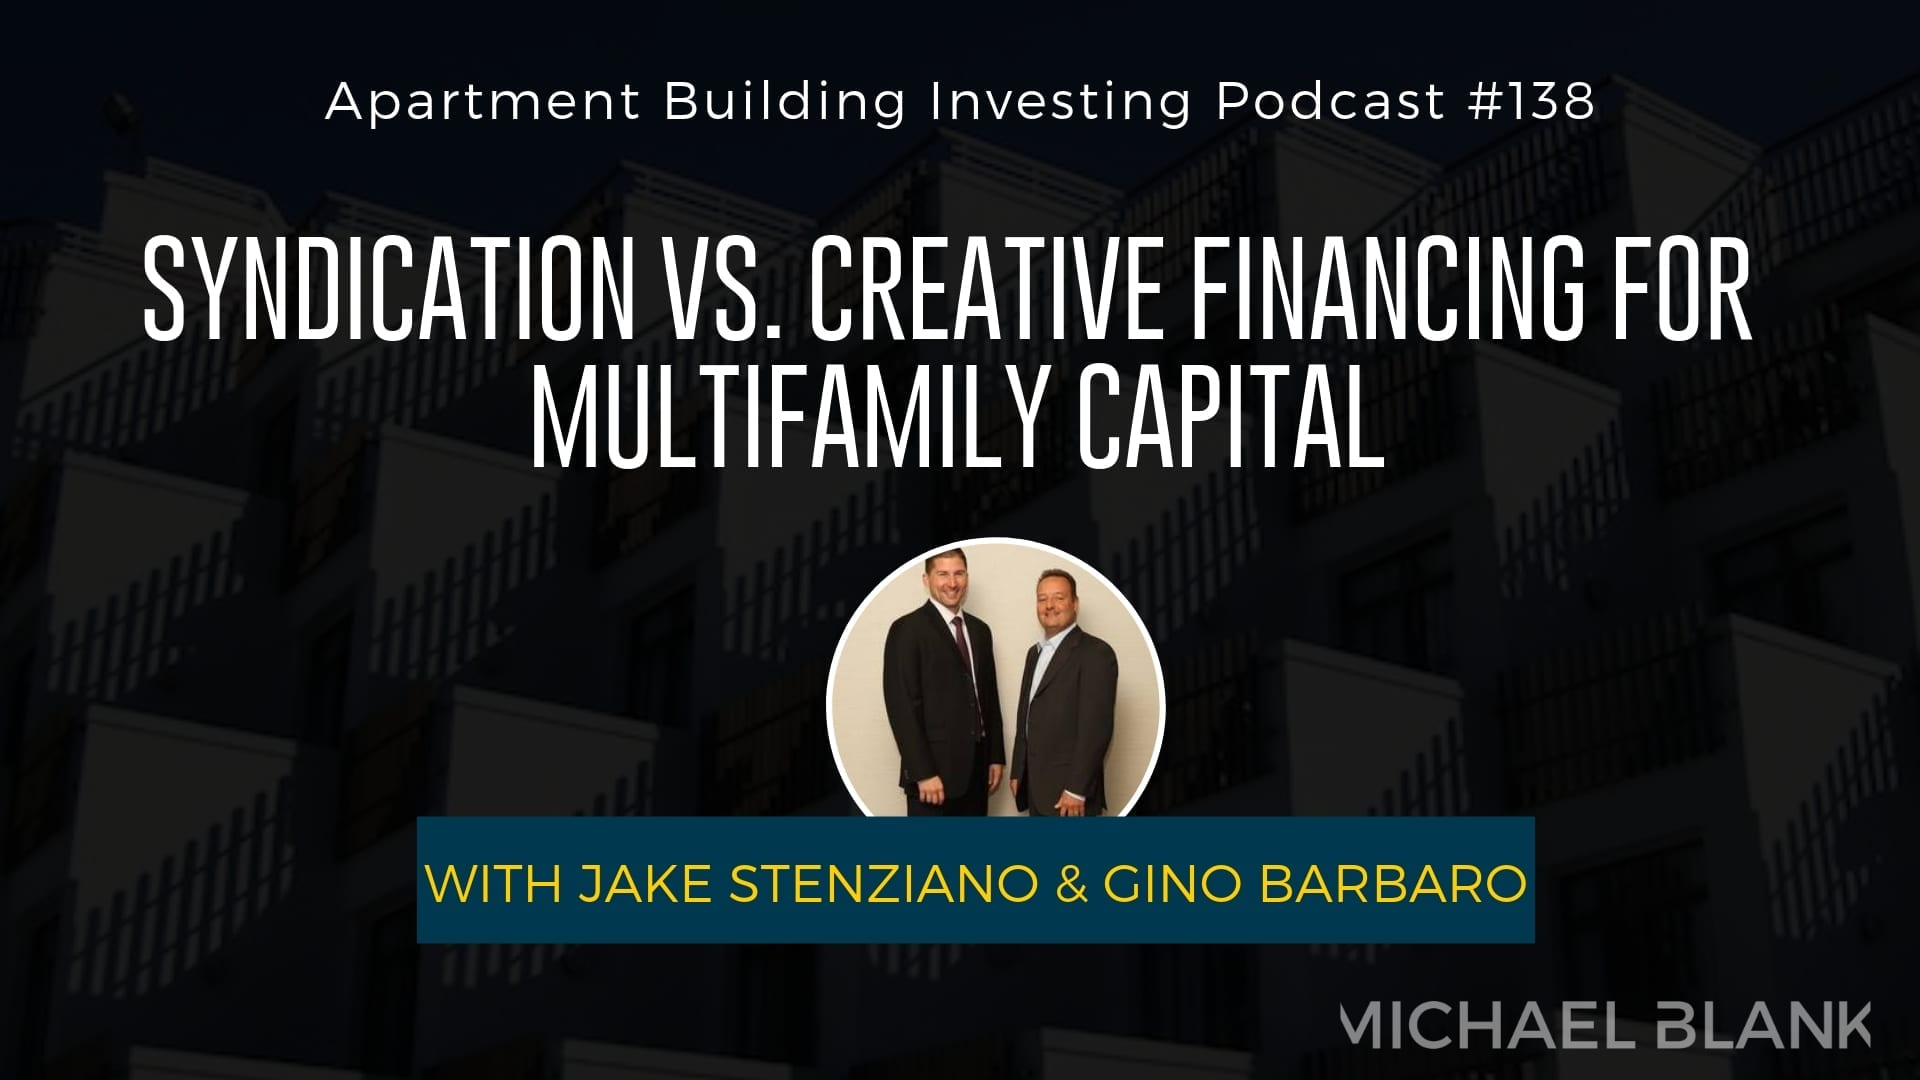 MB 138: Syndication vs. Creative Financing for Multifamily Capital – With Jake Stenziano & Gino Barbaro